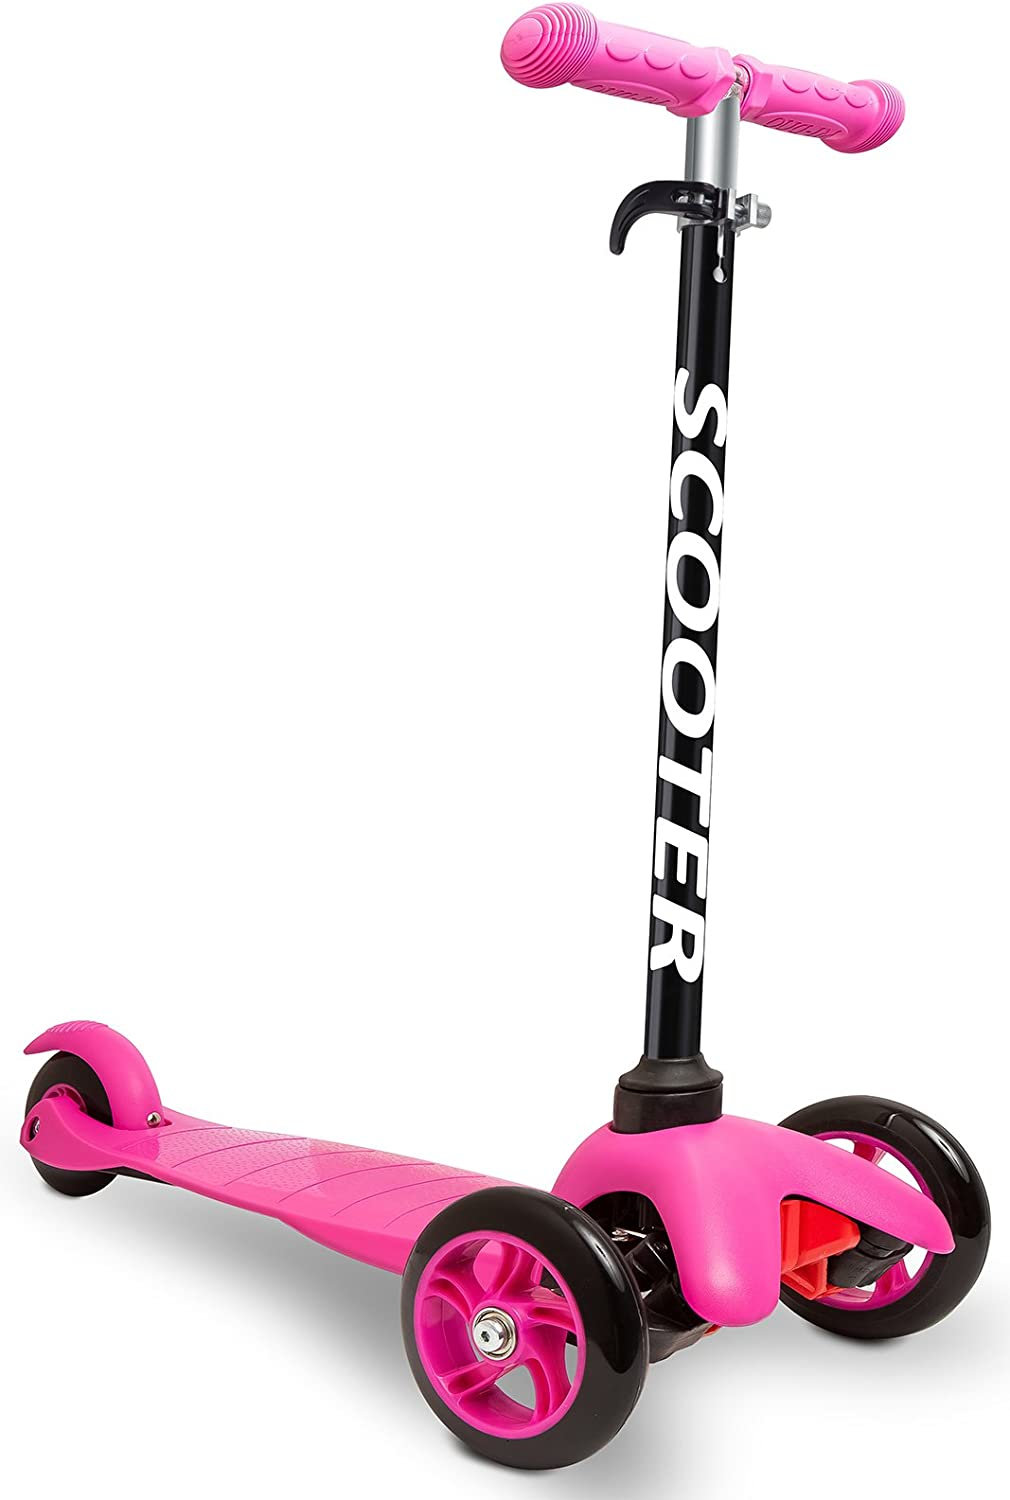 Scooters for Kids Toddler Scooter